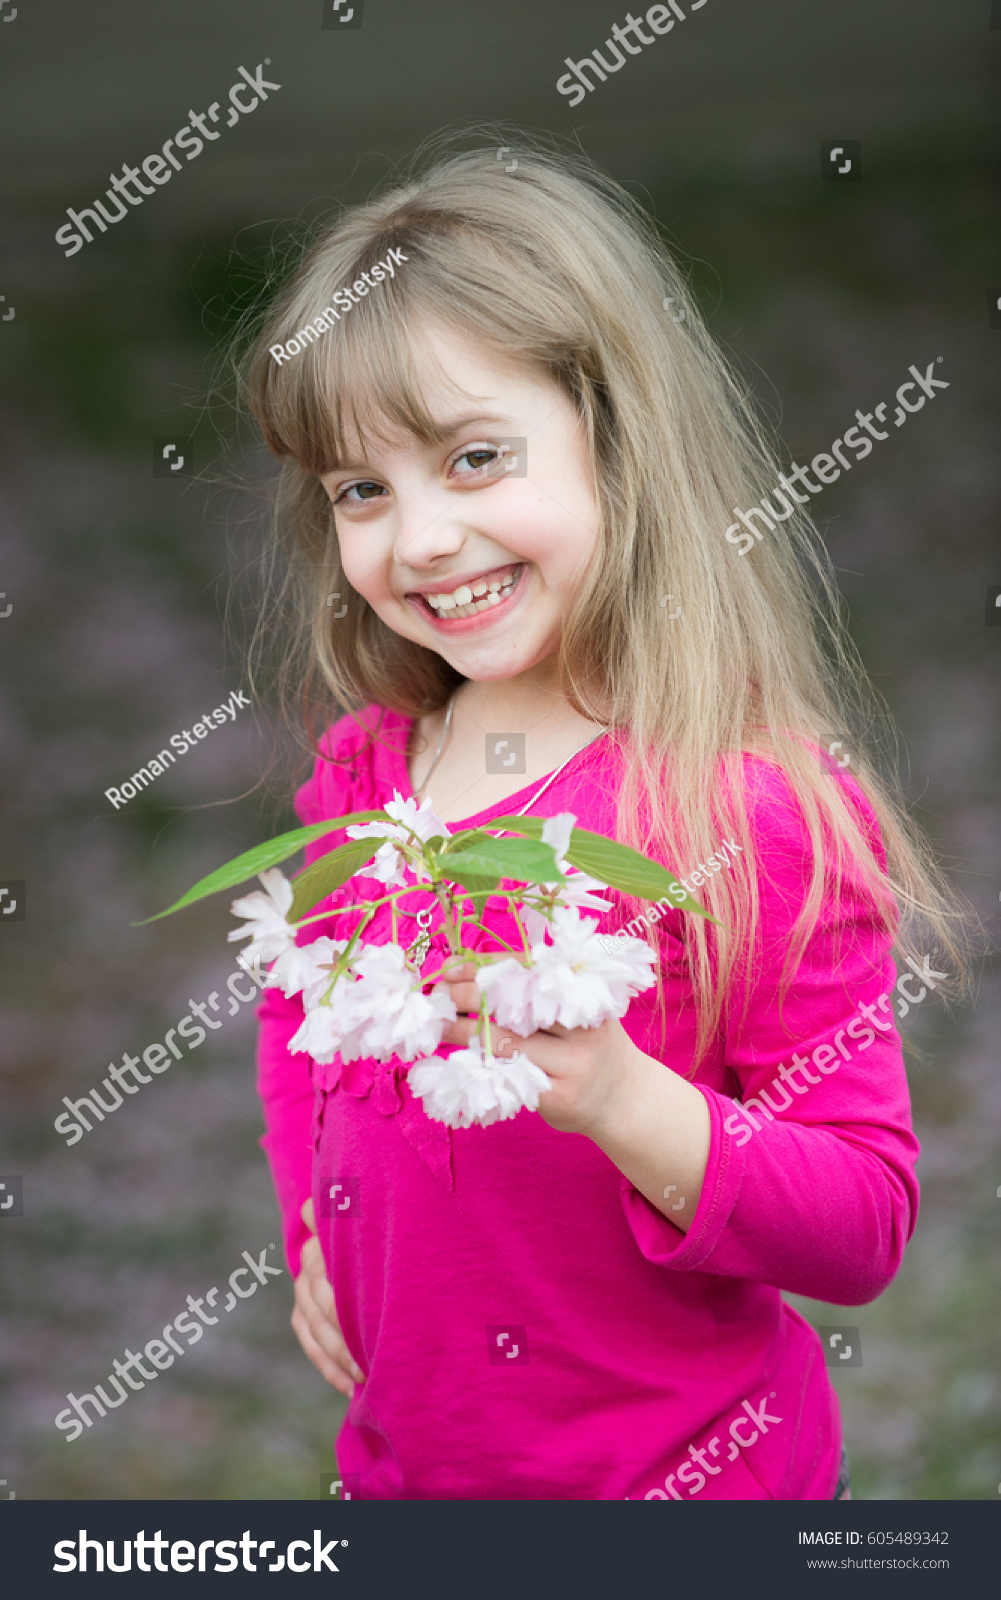 small baby girl cute child adorable stock photo (edit now) 605489342